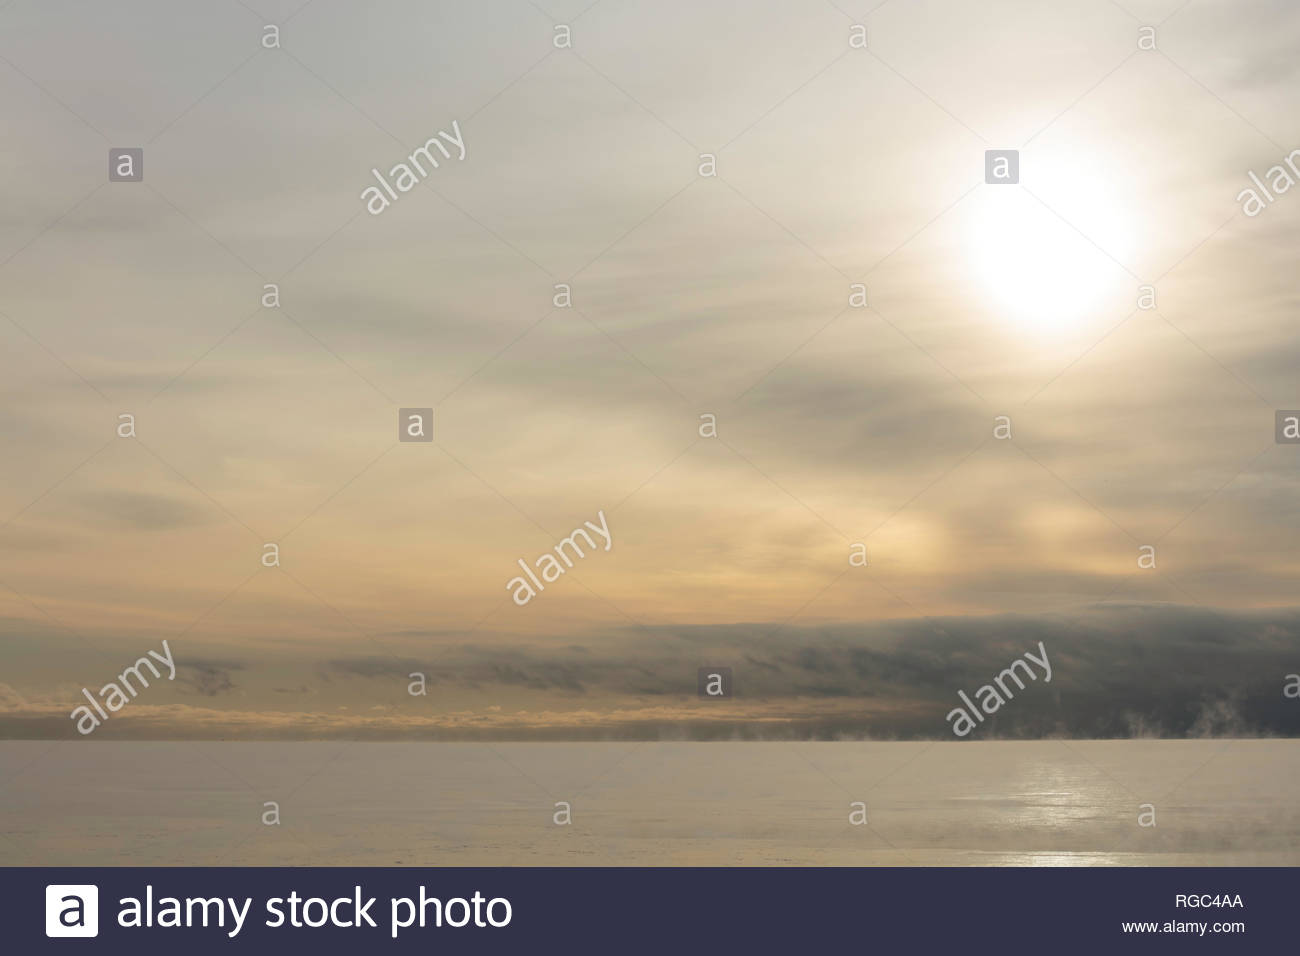 Soft thin transparent overcast cloudy sky diffused winter sun over Lake Ontario in Ontario Canada - Stock Image